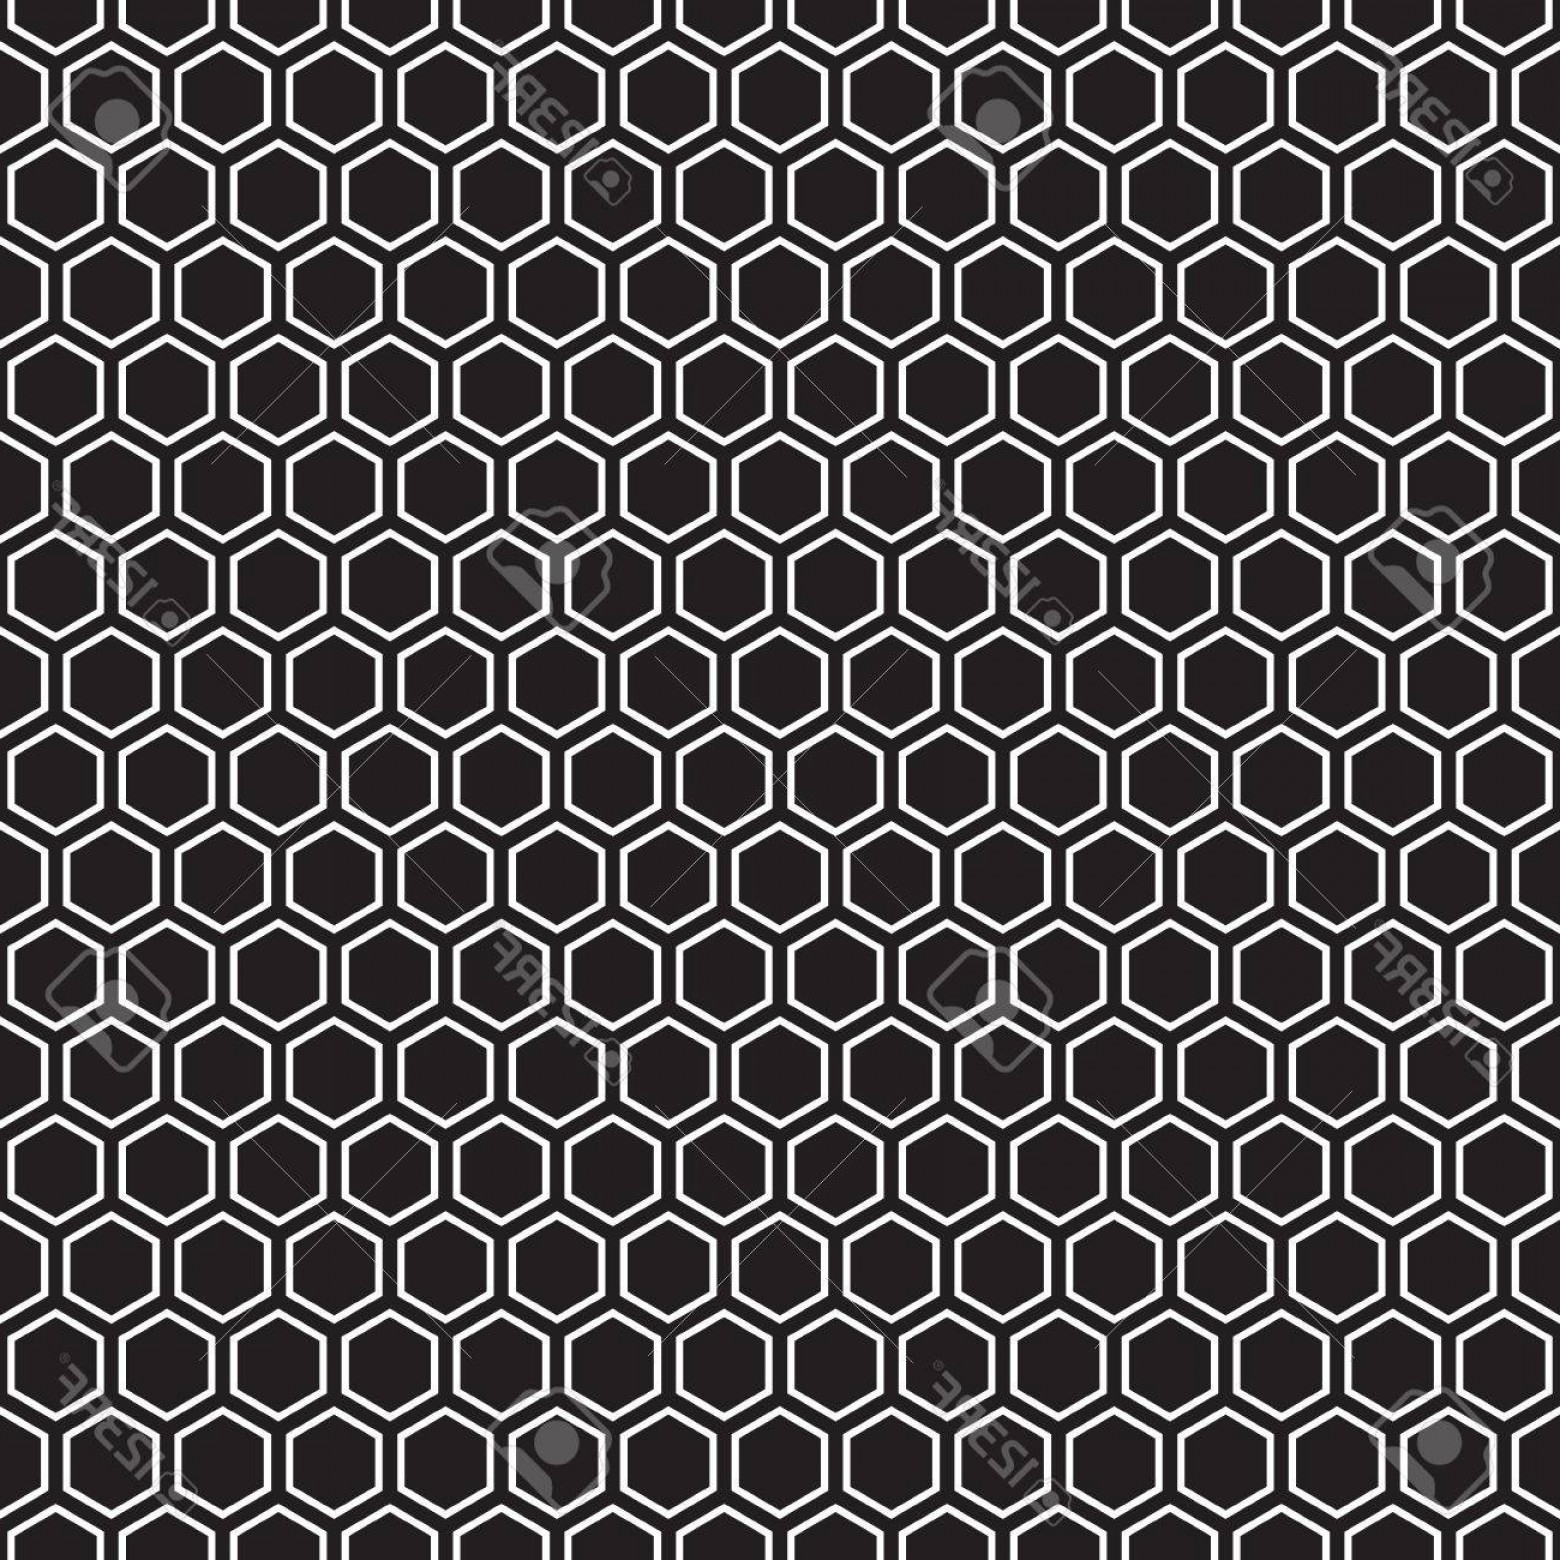 Hexagon Honeycomb Pattern Vector: Photostock Vector Seamless Hexagonal Honeycomb Pattern Texture Background Black Red And White Pattern